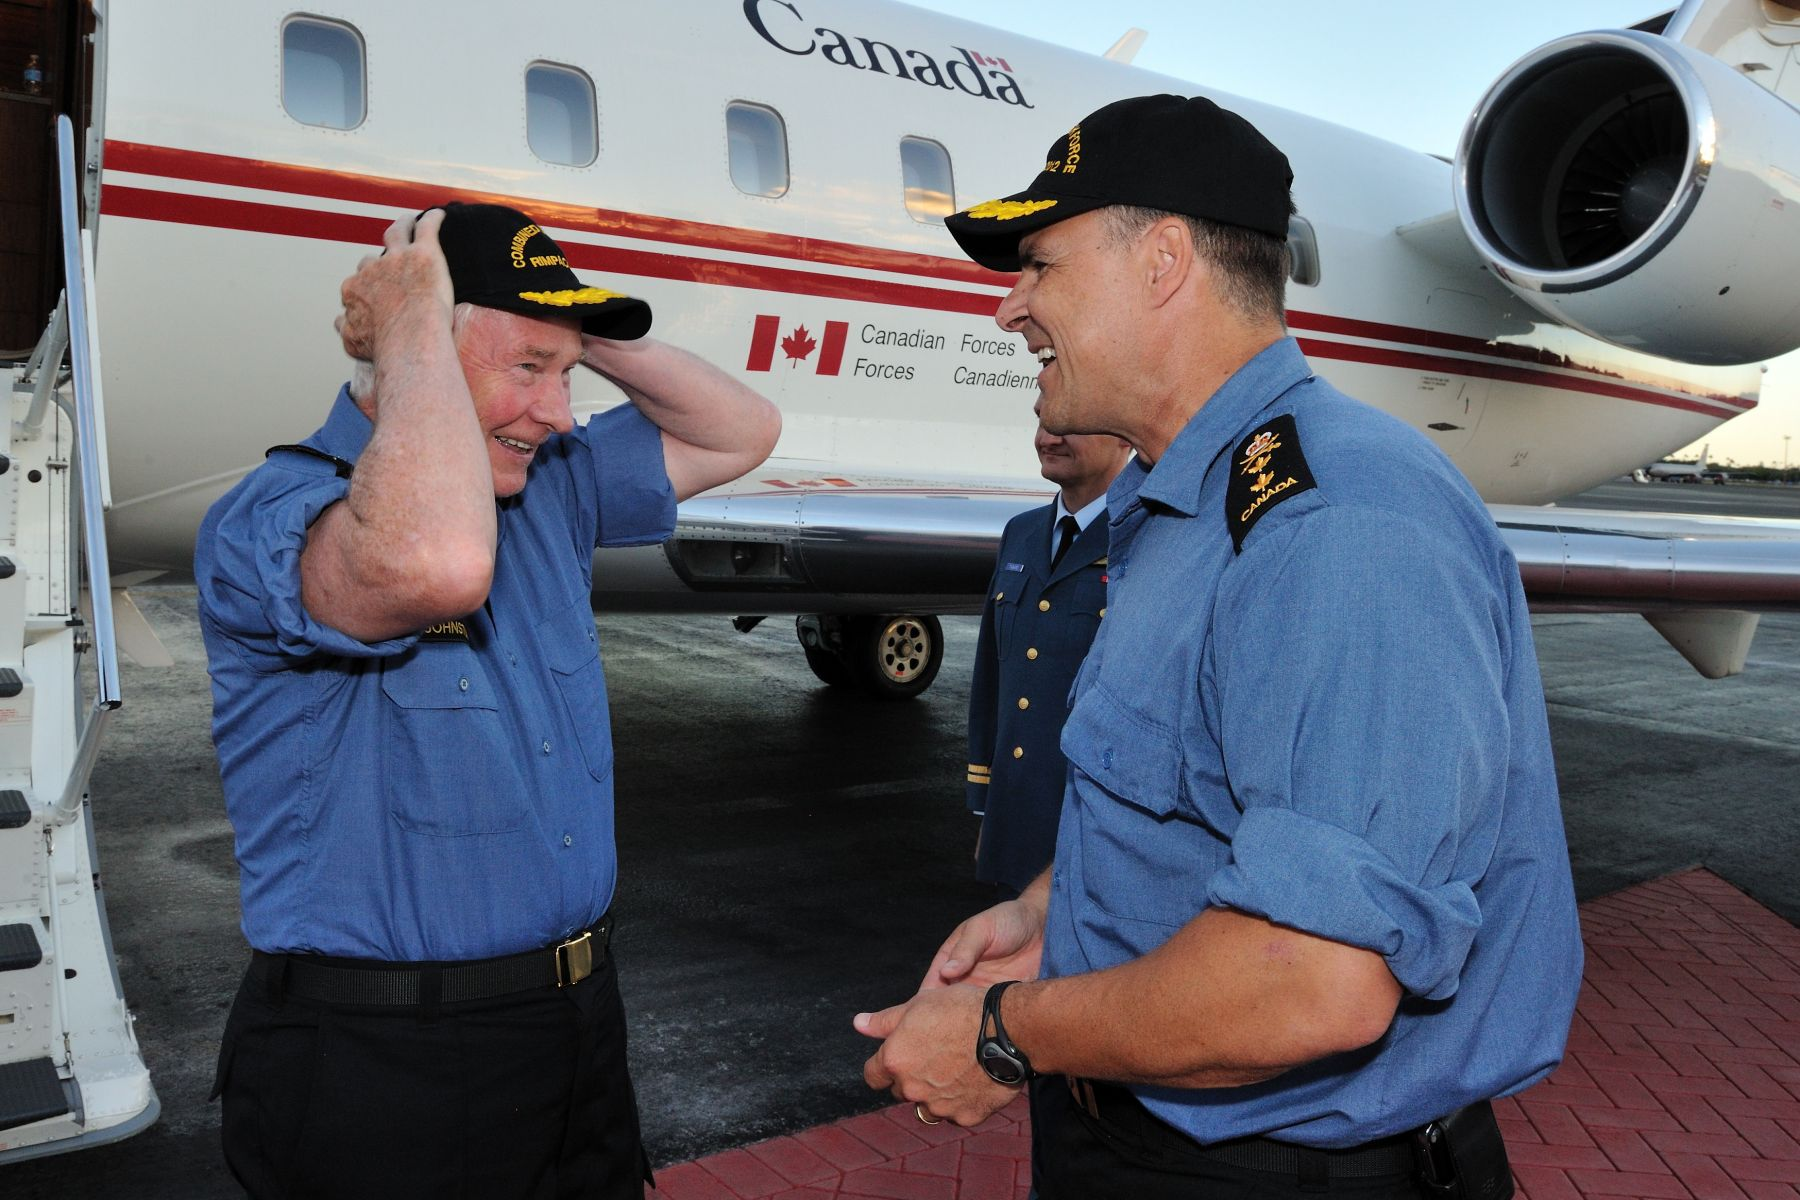 The Governor General and Commander-in-Chief of Canada visited Canadian Forces members operating in Hawaii and the Pacific Ocean during the Rim of the Pacific (RIMPAC) 2012 joint and combined multinational force exercise. On arrival at Joint Base Pearl Harbor – Hickam on July 19, he was welcomed by Rear-Admiral Ron Lloyd, Deputy Commander Combined Task Force.